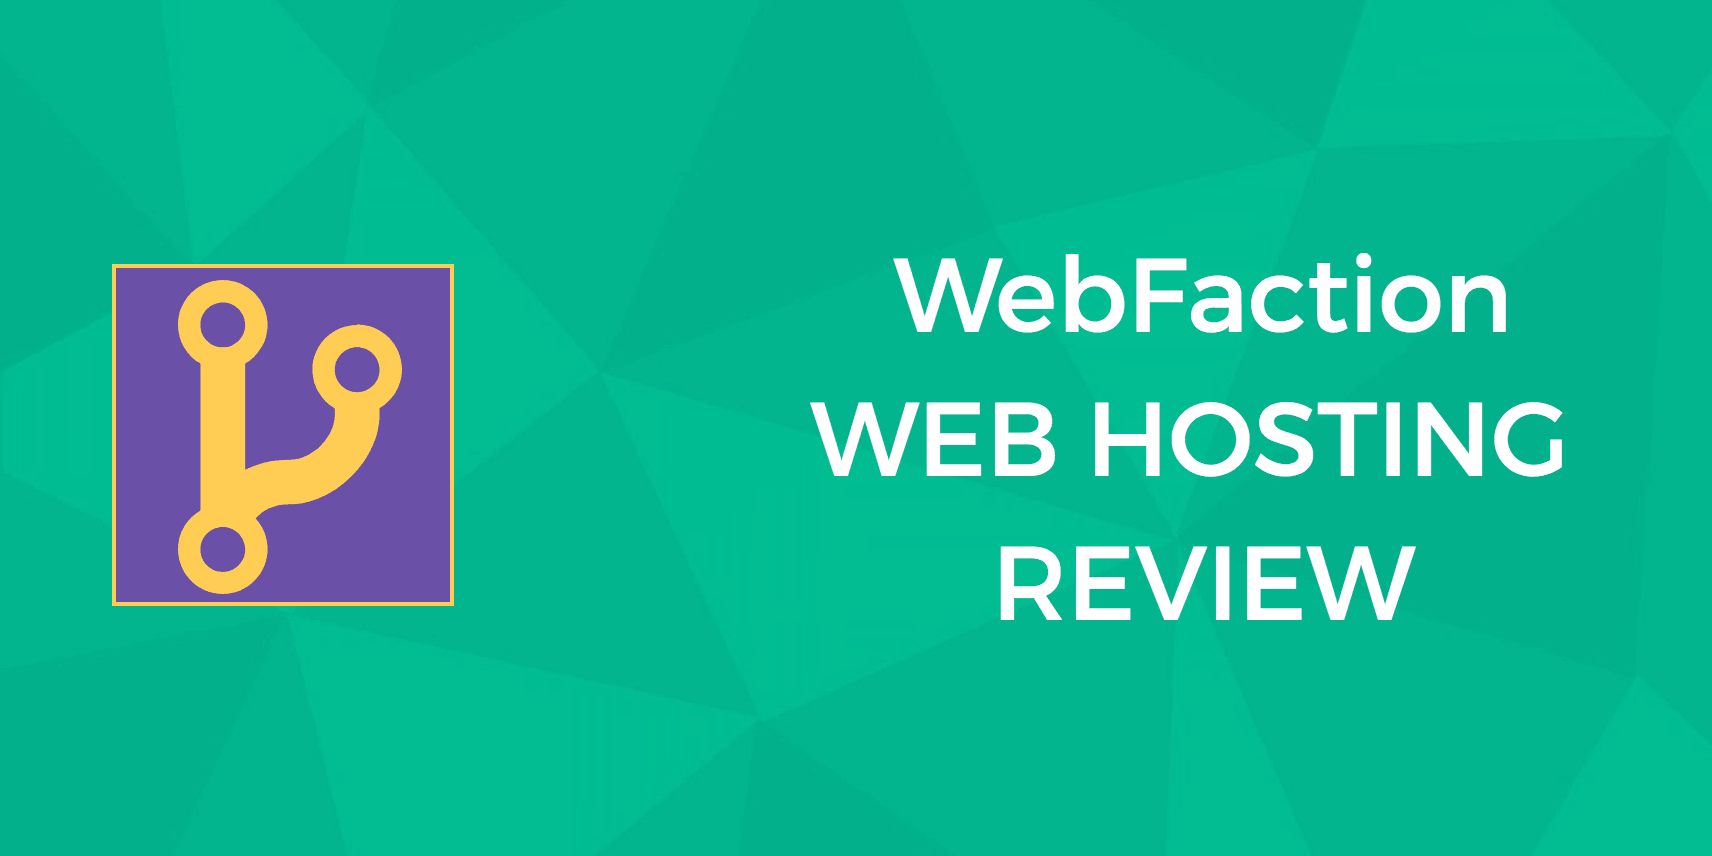 Webfaction Hosting Our Review Puts Their Claim Of Programmer